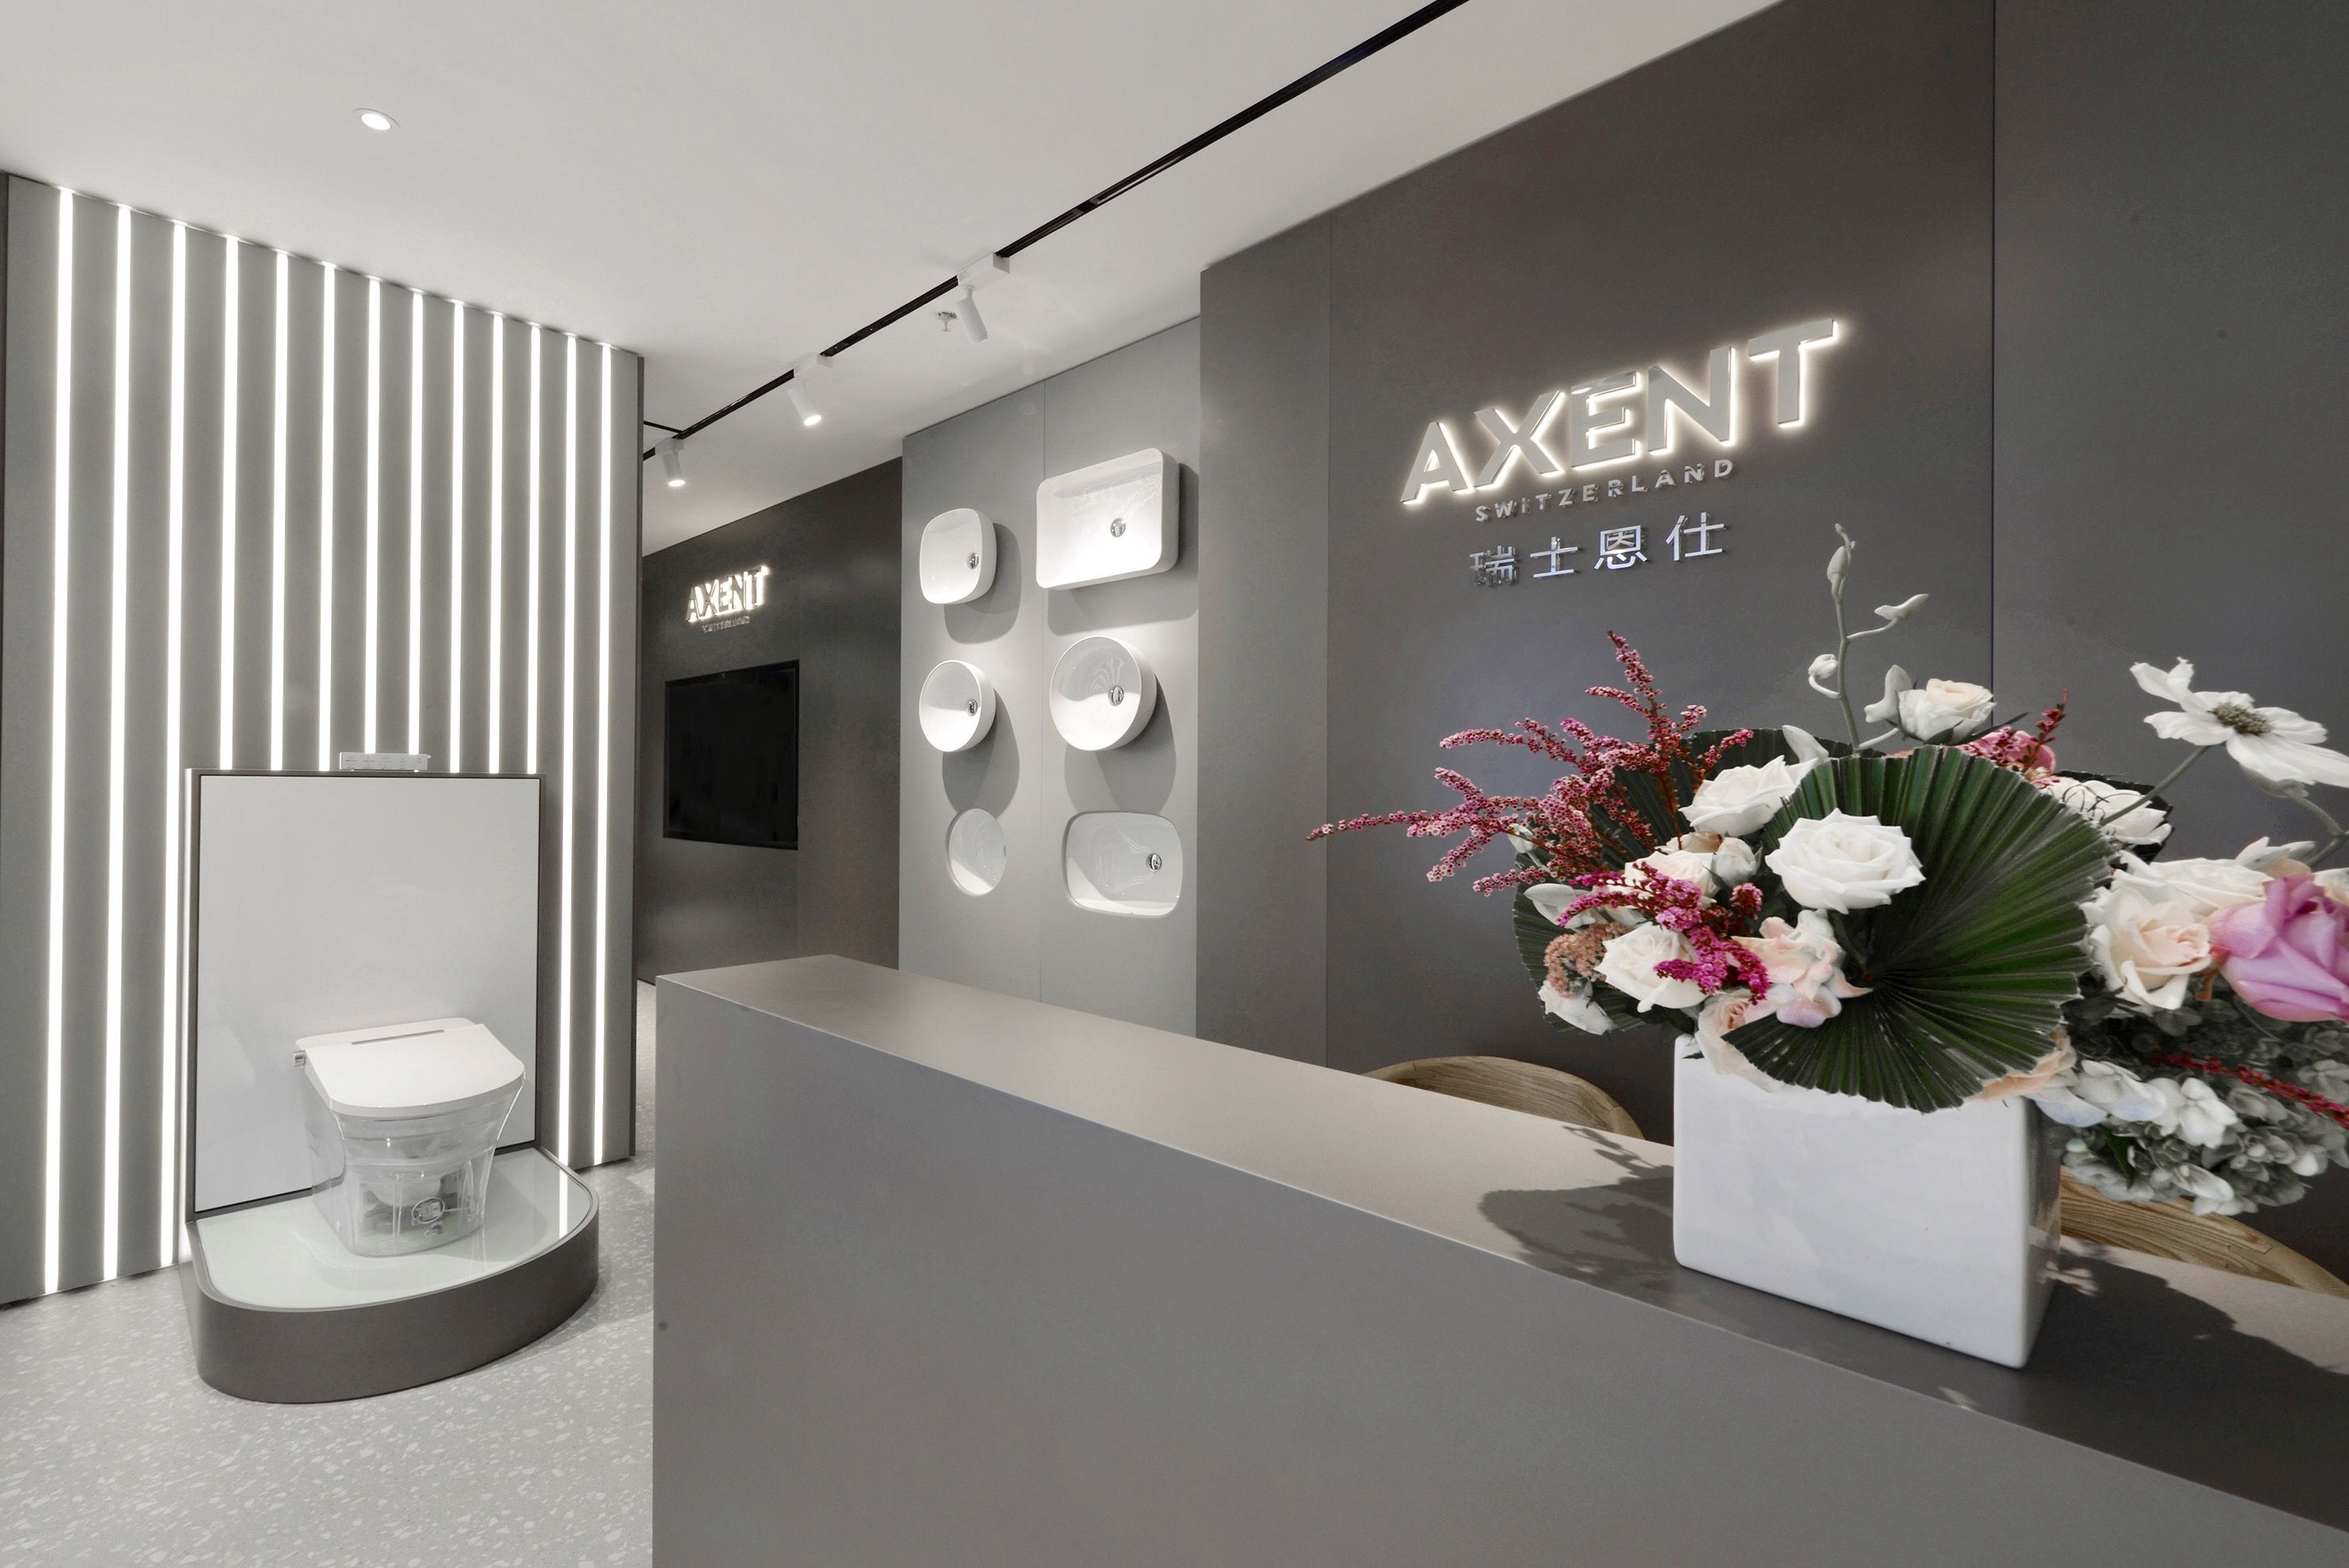 20 Axent Exhibitions Ideas Luxury Bathroom Bathroom Supplies Bathroom Technology